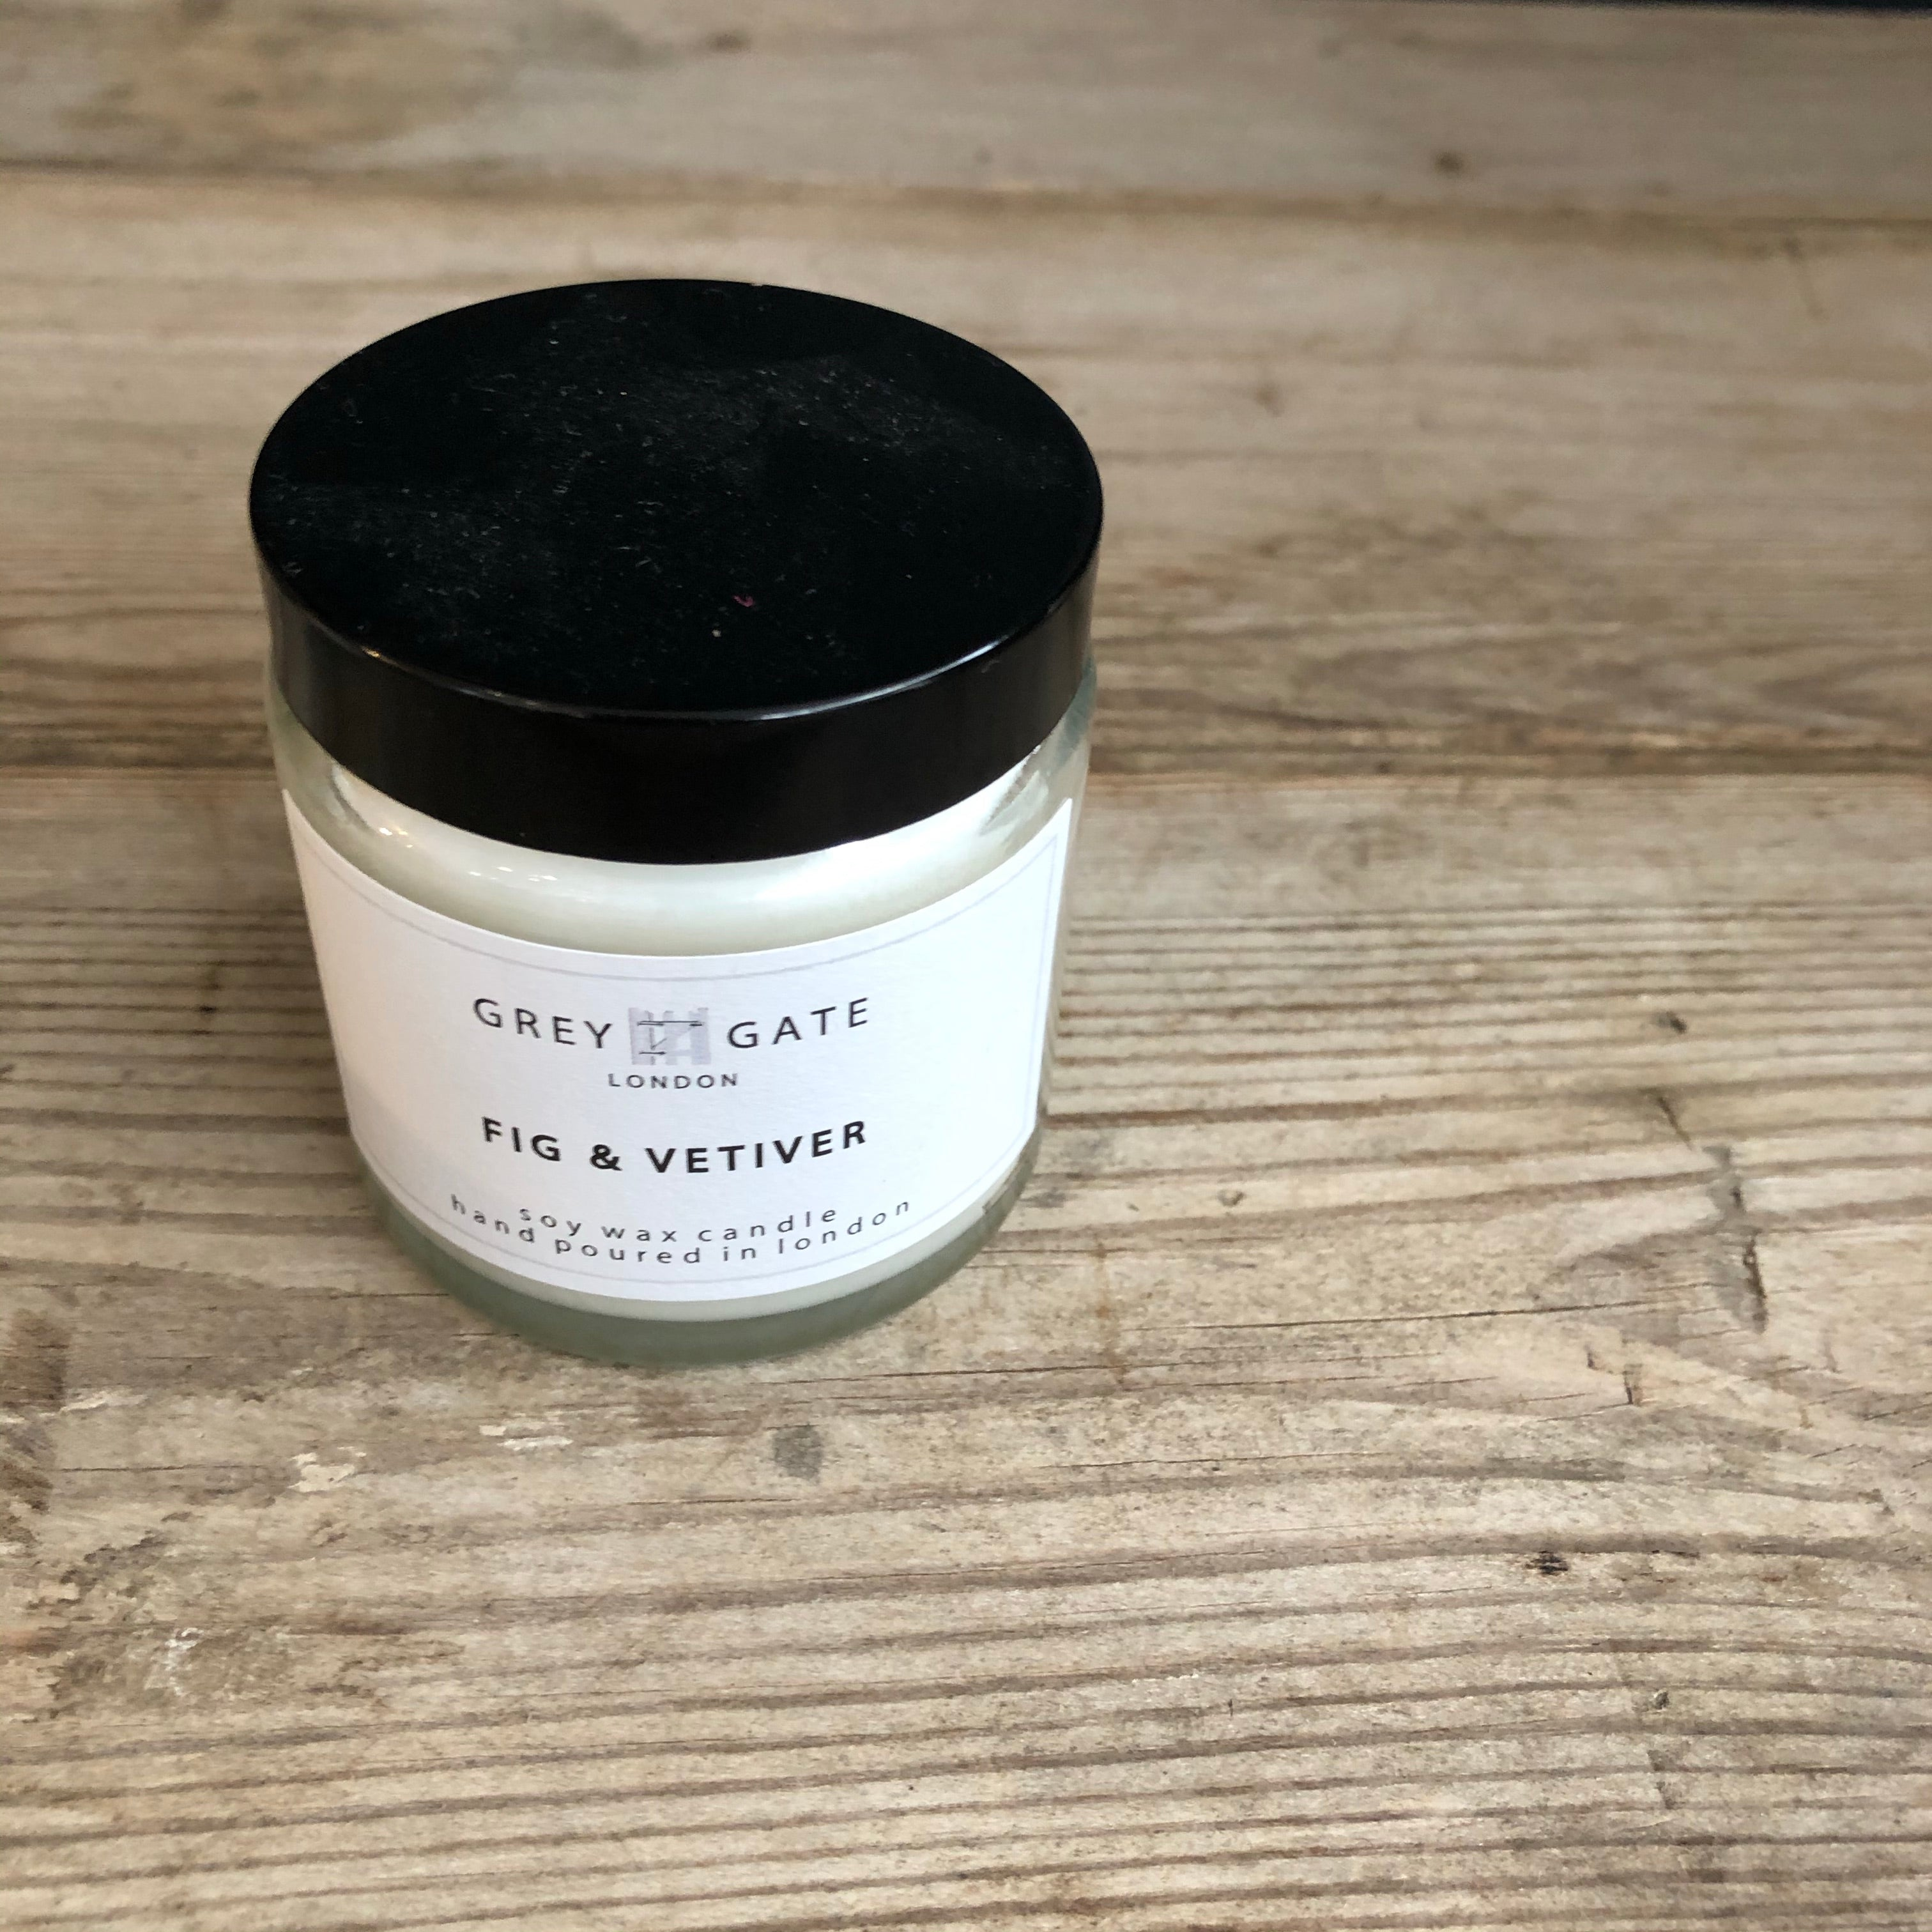 Fig & Vetivier Candle